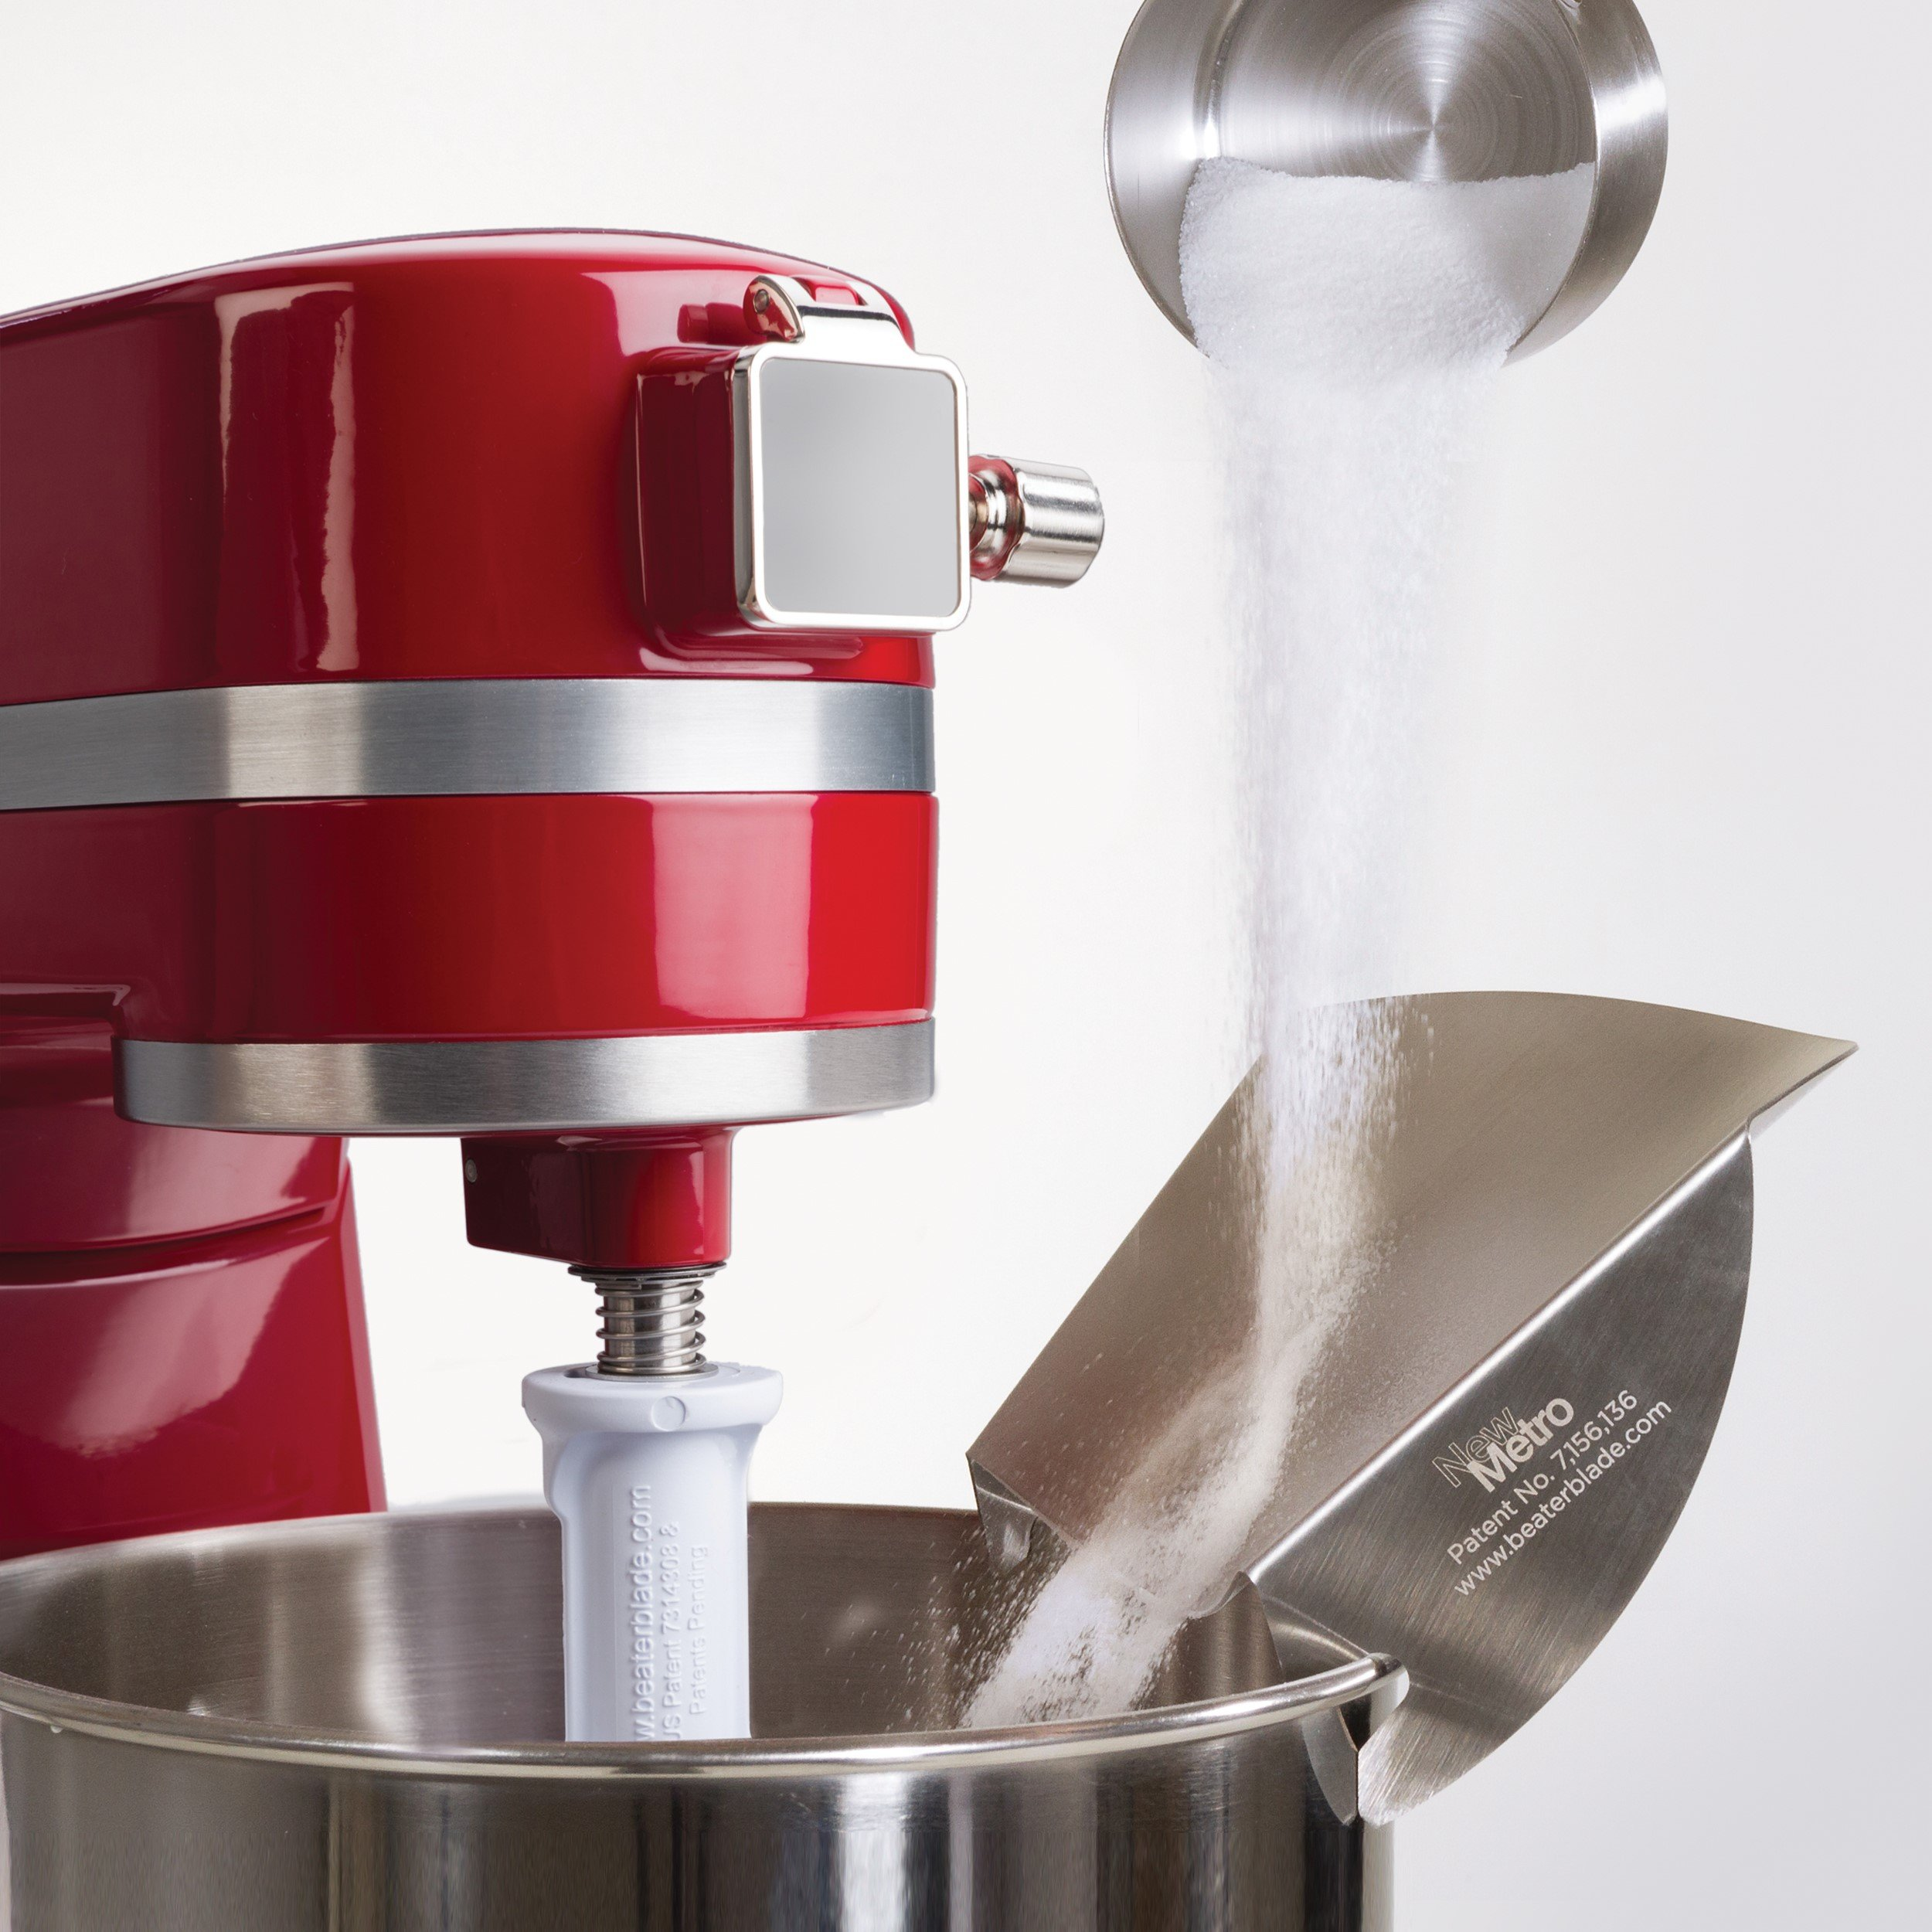 New Metro Design Universal Pouring Chute for Use with Stand Mixers with Metal Bowls, Stainless Steel by New Metro Design (Image #3)